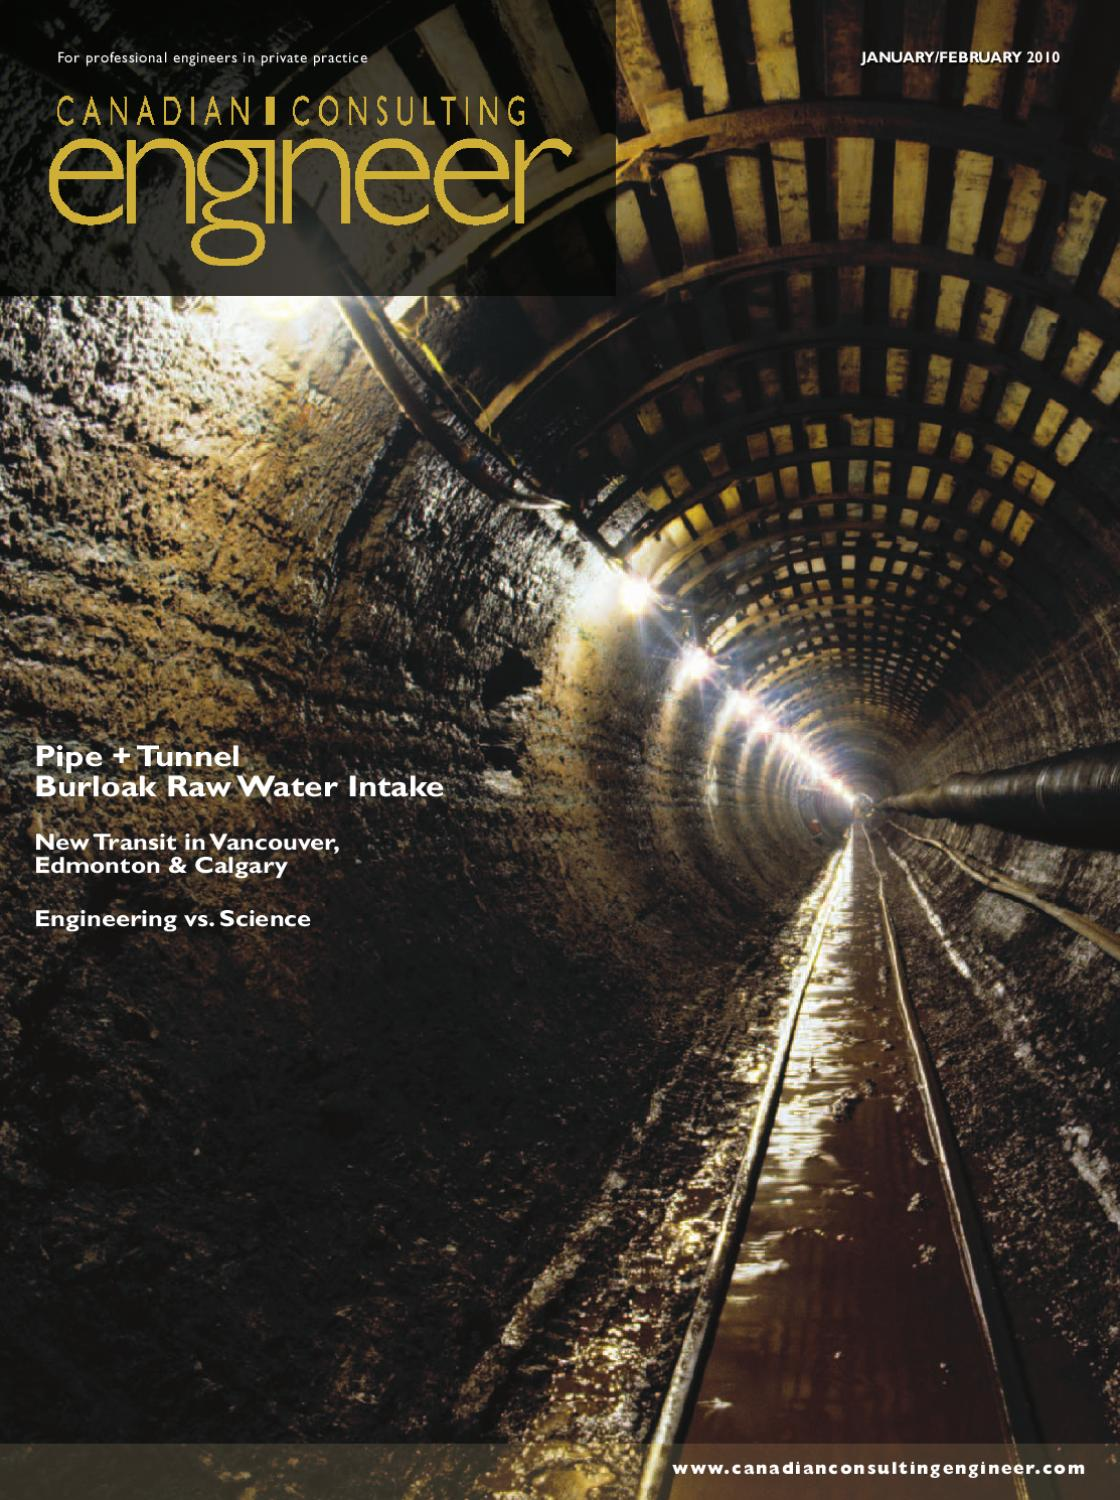 Canadian Consulting Engineer January/February 2010 by Annex